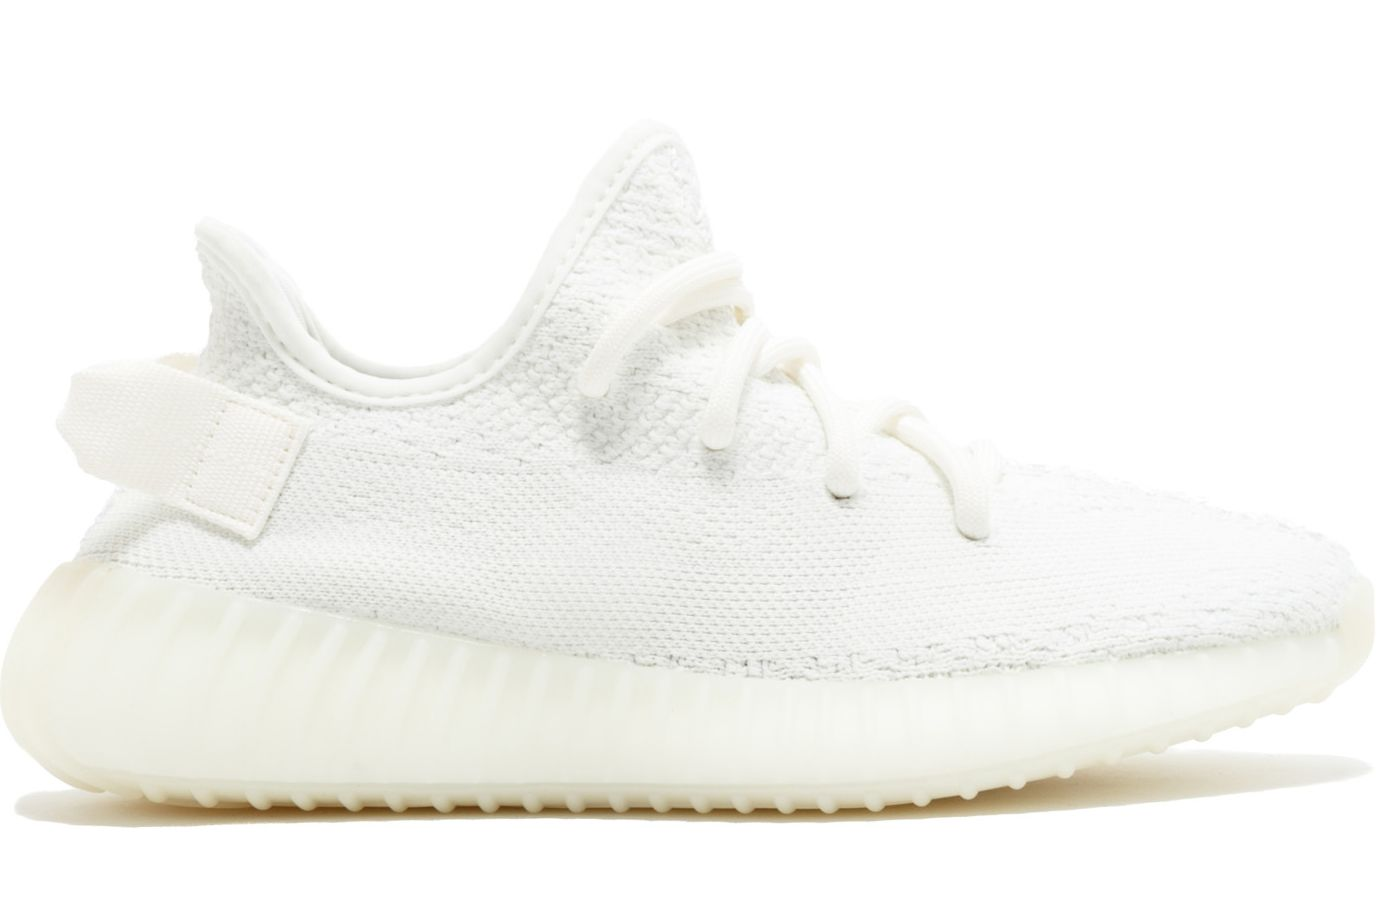 Yeezy Boost 350 V2 'Cream White'